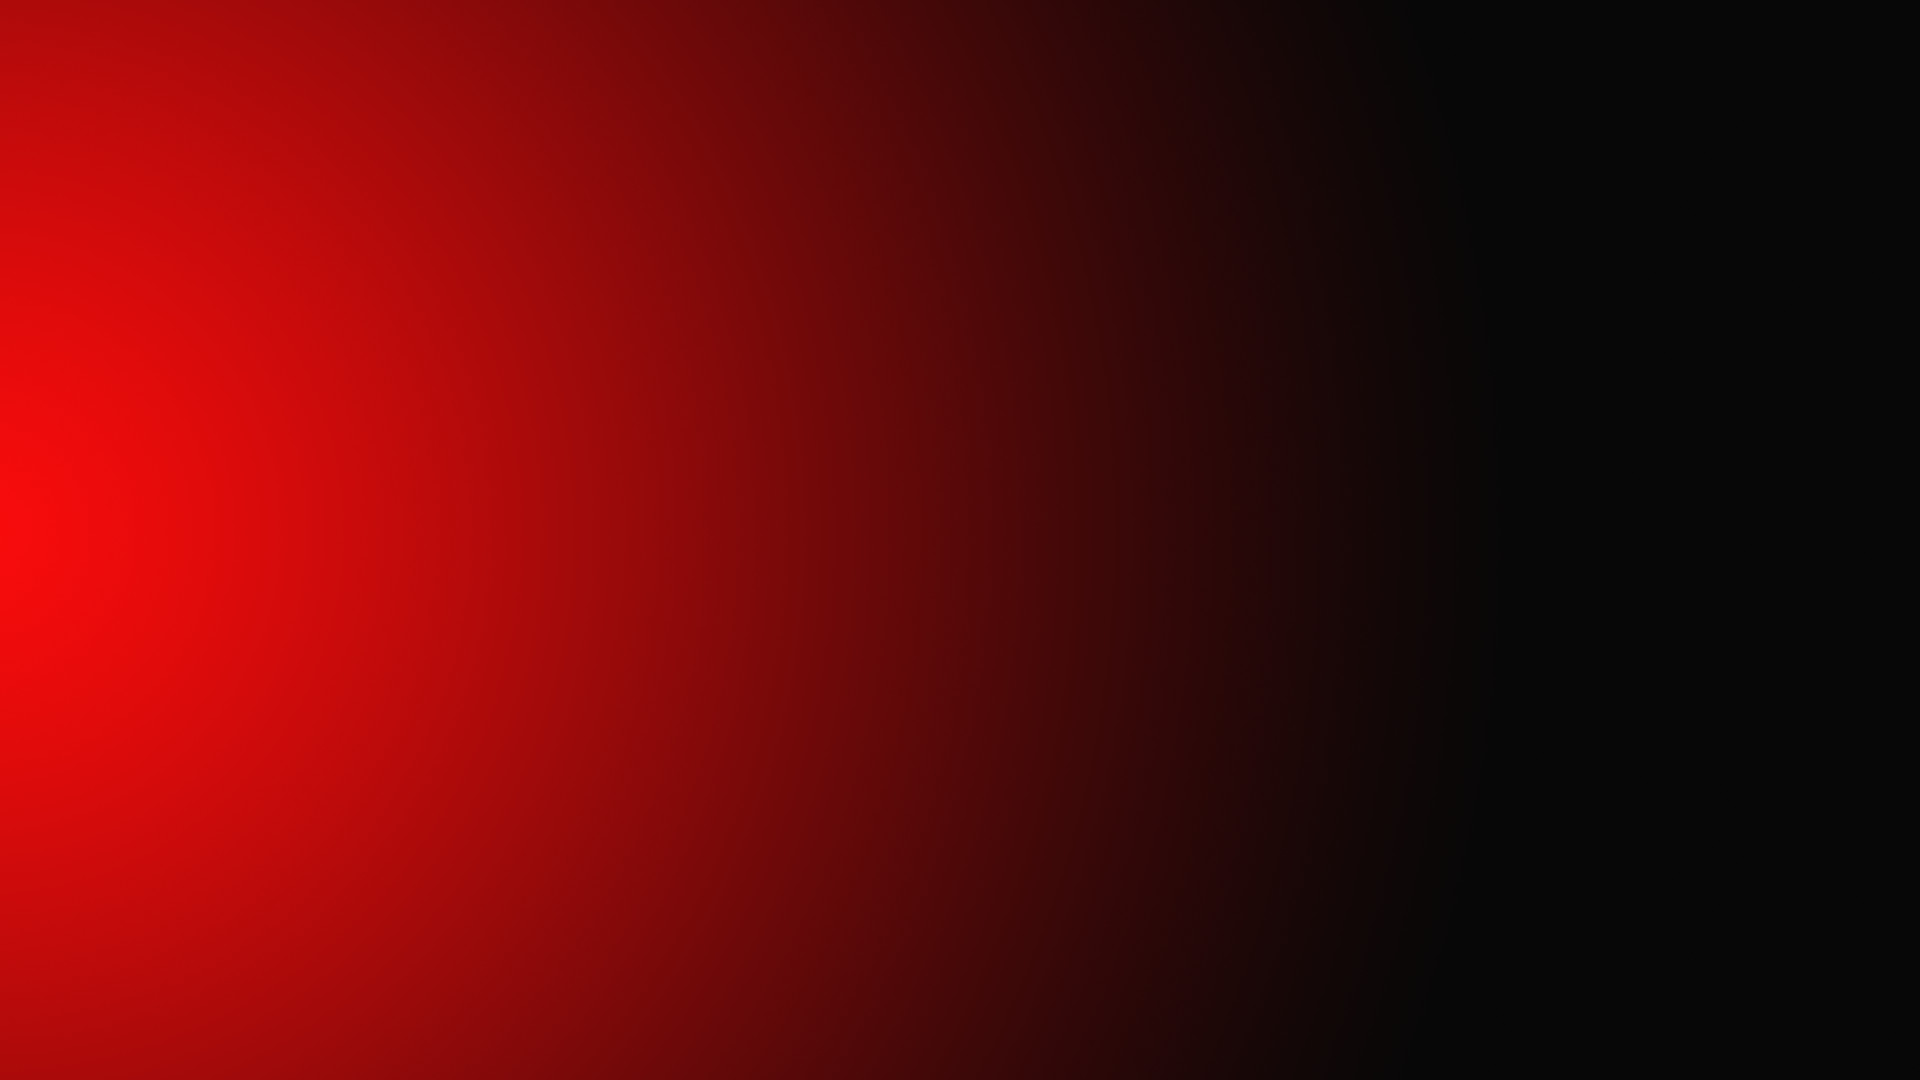 Red Fade Background – More information